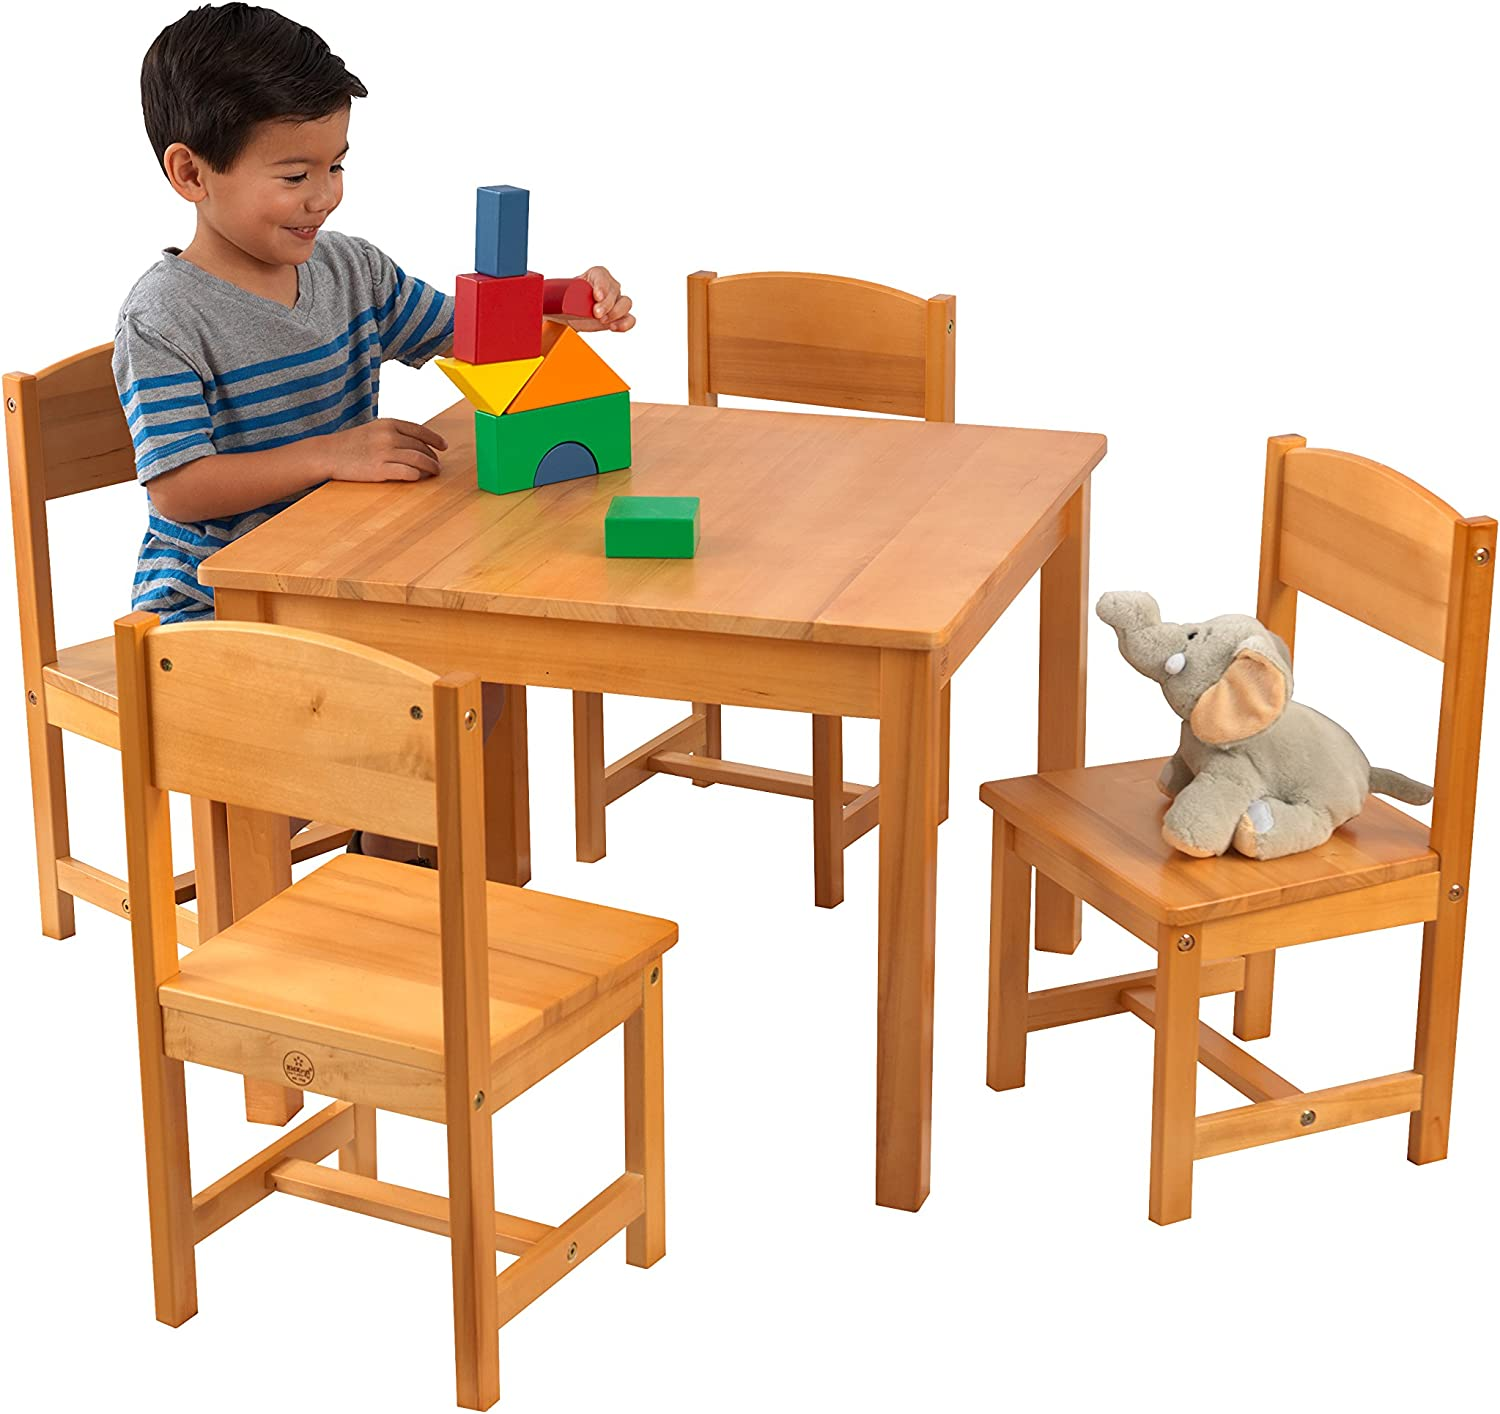 KidKraft Wooden Farmhouse Table & 4 Chairs Set, Children's Furniture for Arts & Activity – Natural